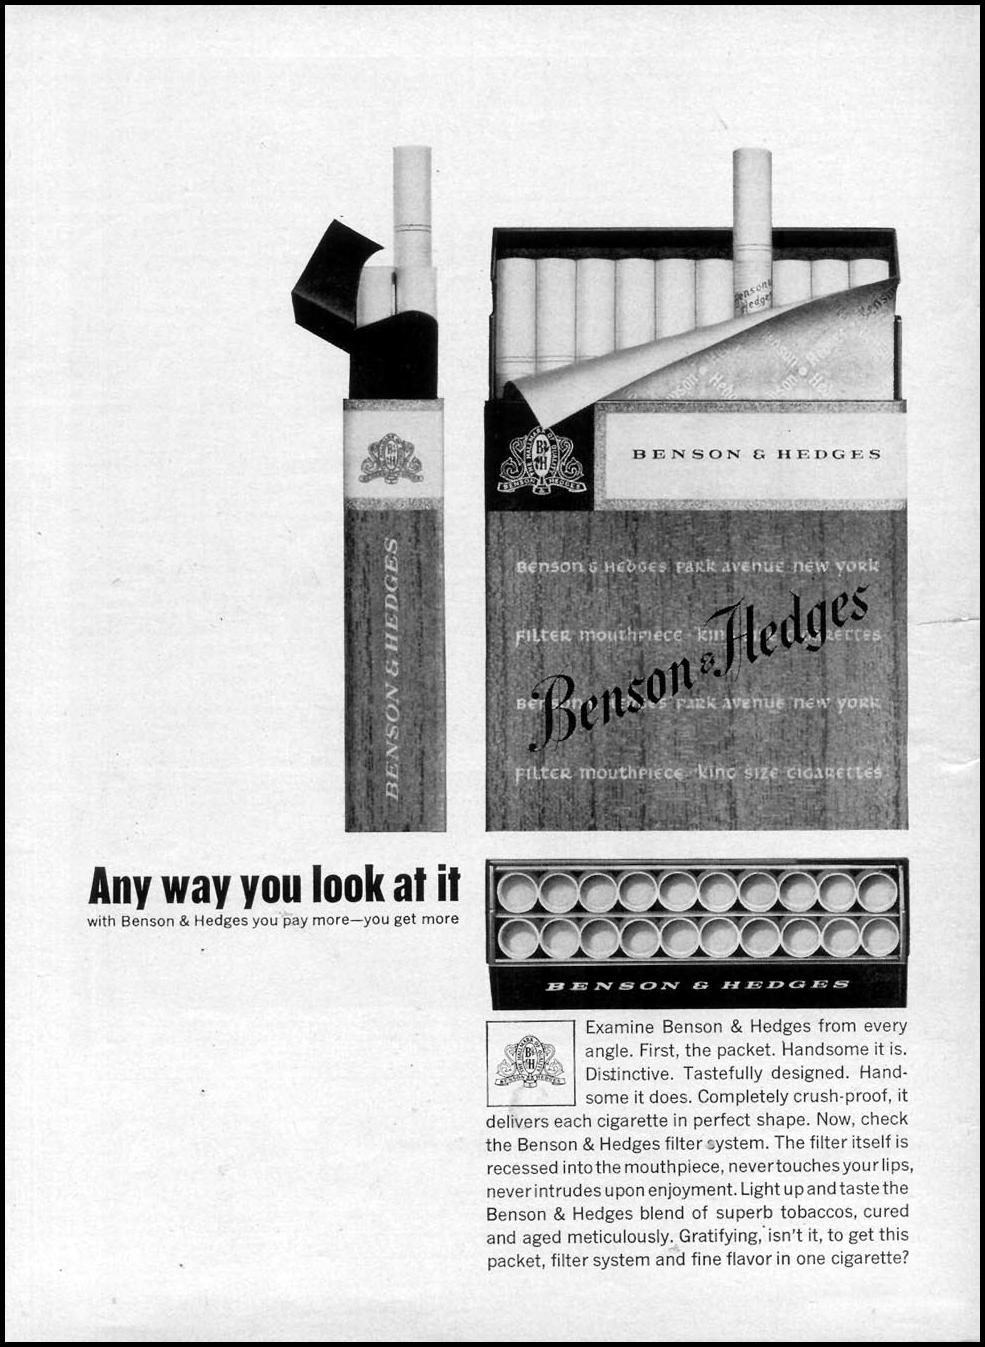 BENSON & HEDGES CIGARETTES TIME 07/13/1962 p. 8